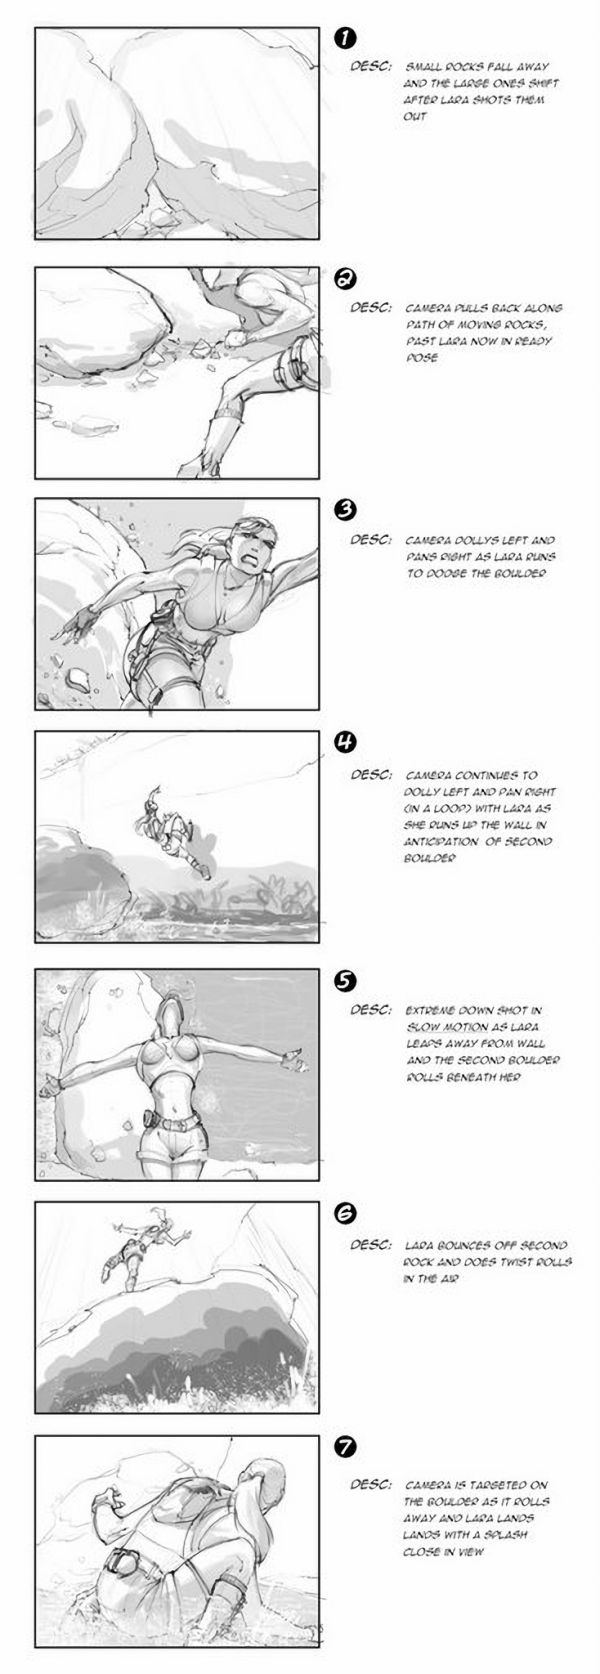 trl-storyboard-other016F45967C-08BC-46E4-0DB5-AD1CE756A358.jpg